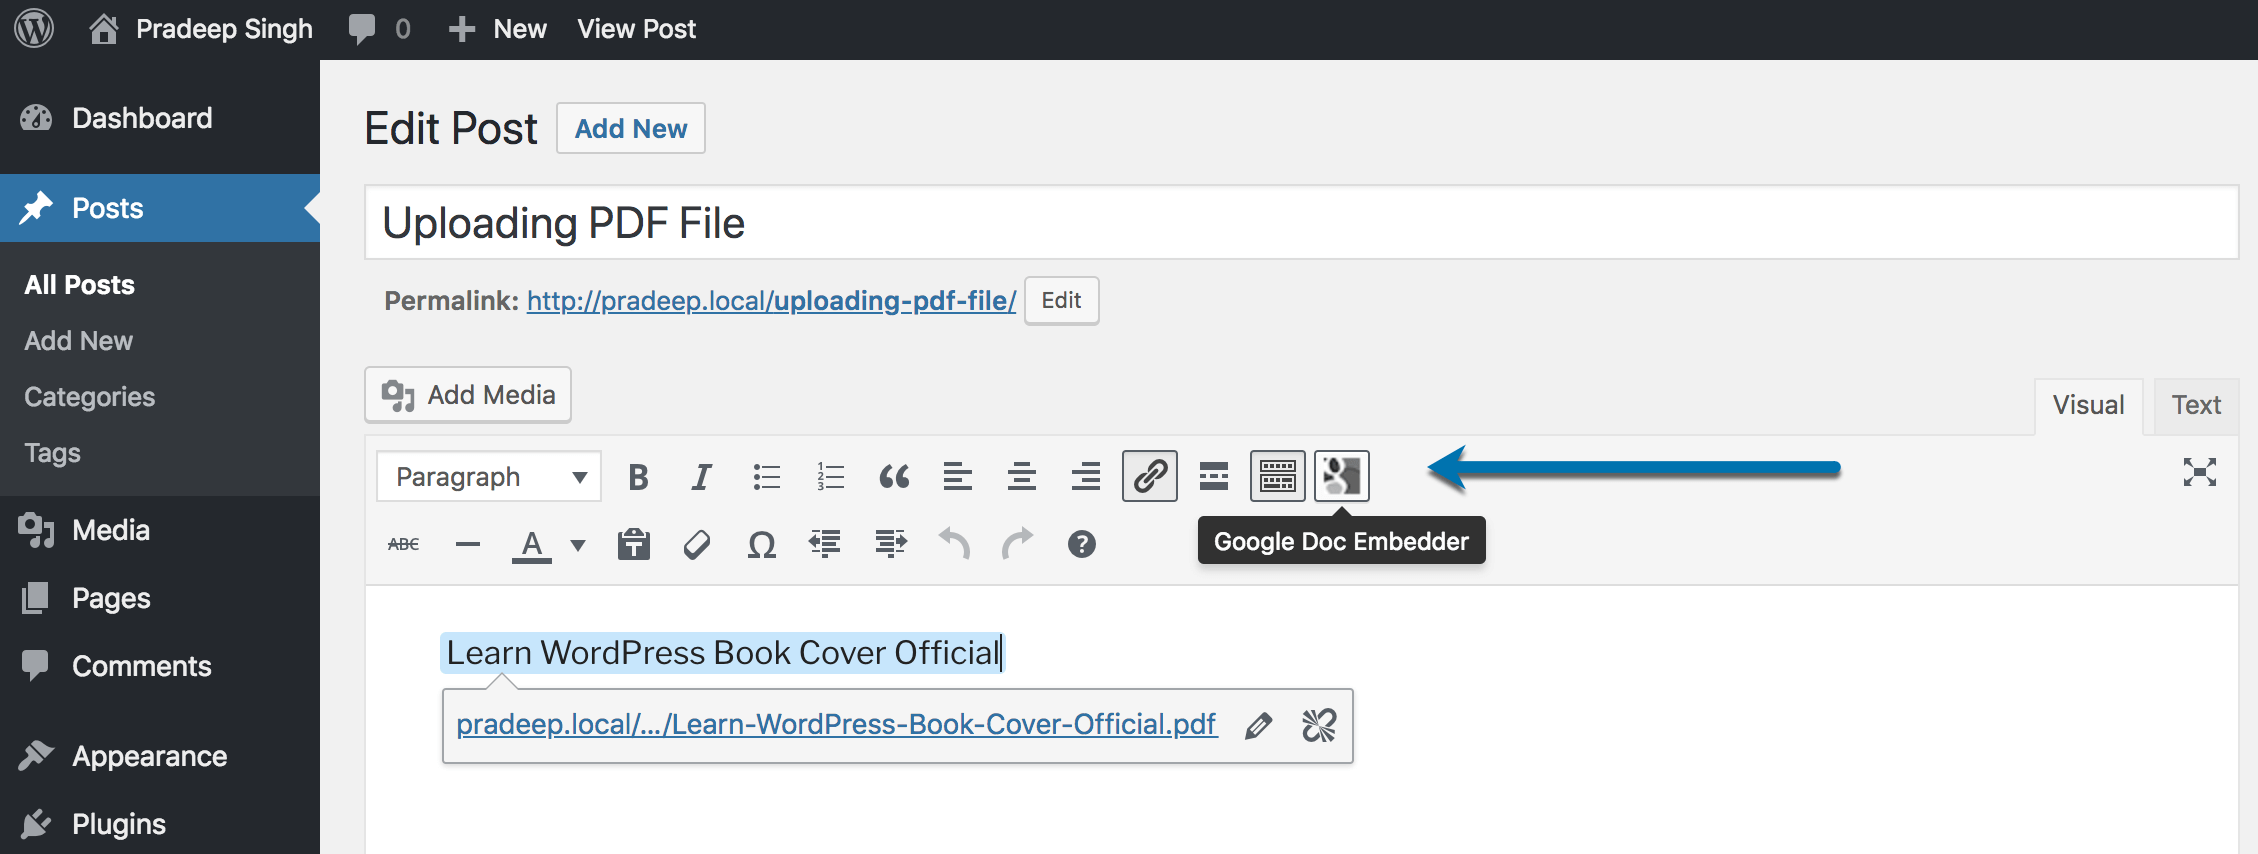 Google Doc Embedder Plugin sortcode Button